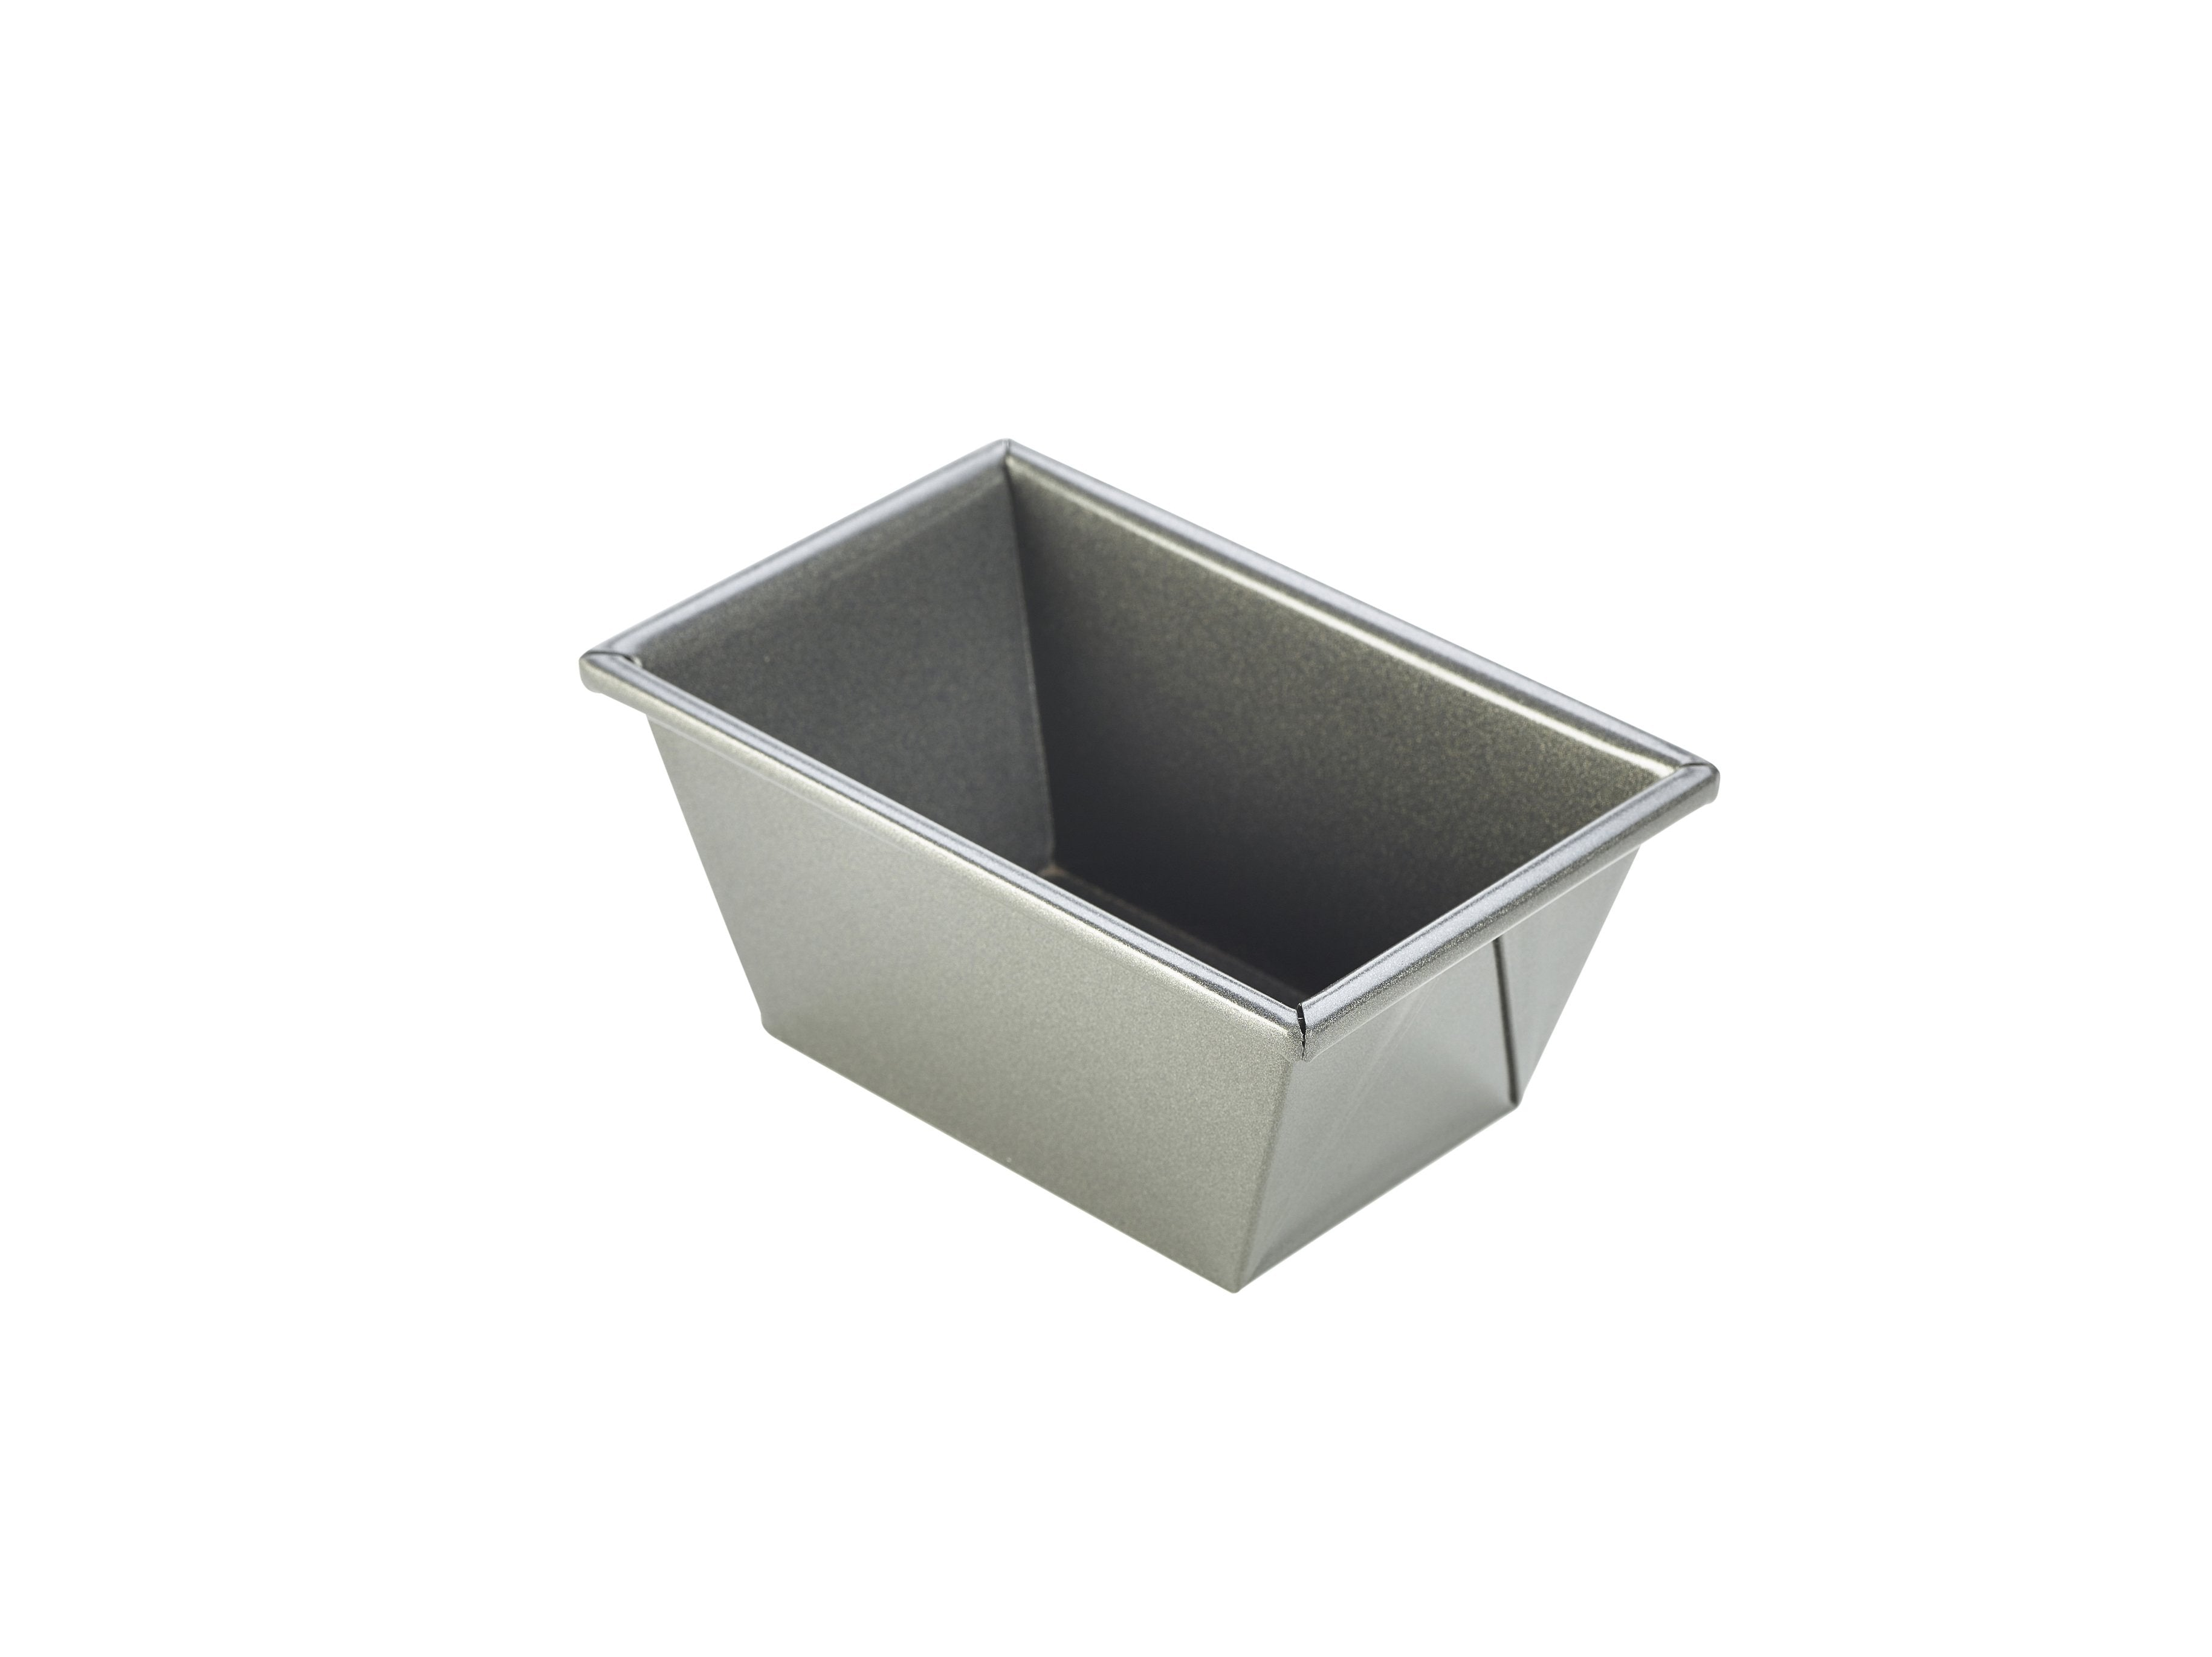 Carbon Steel Non-Stick Traditional Loaf Pan